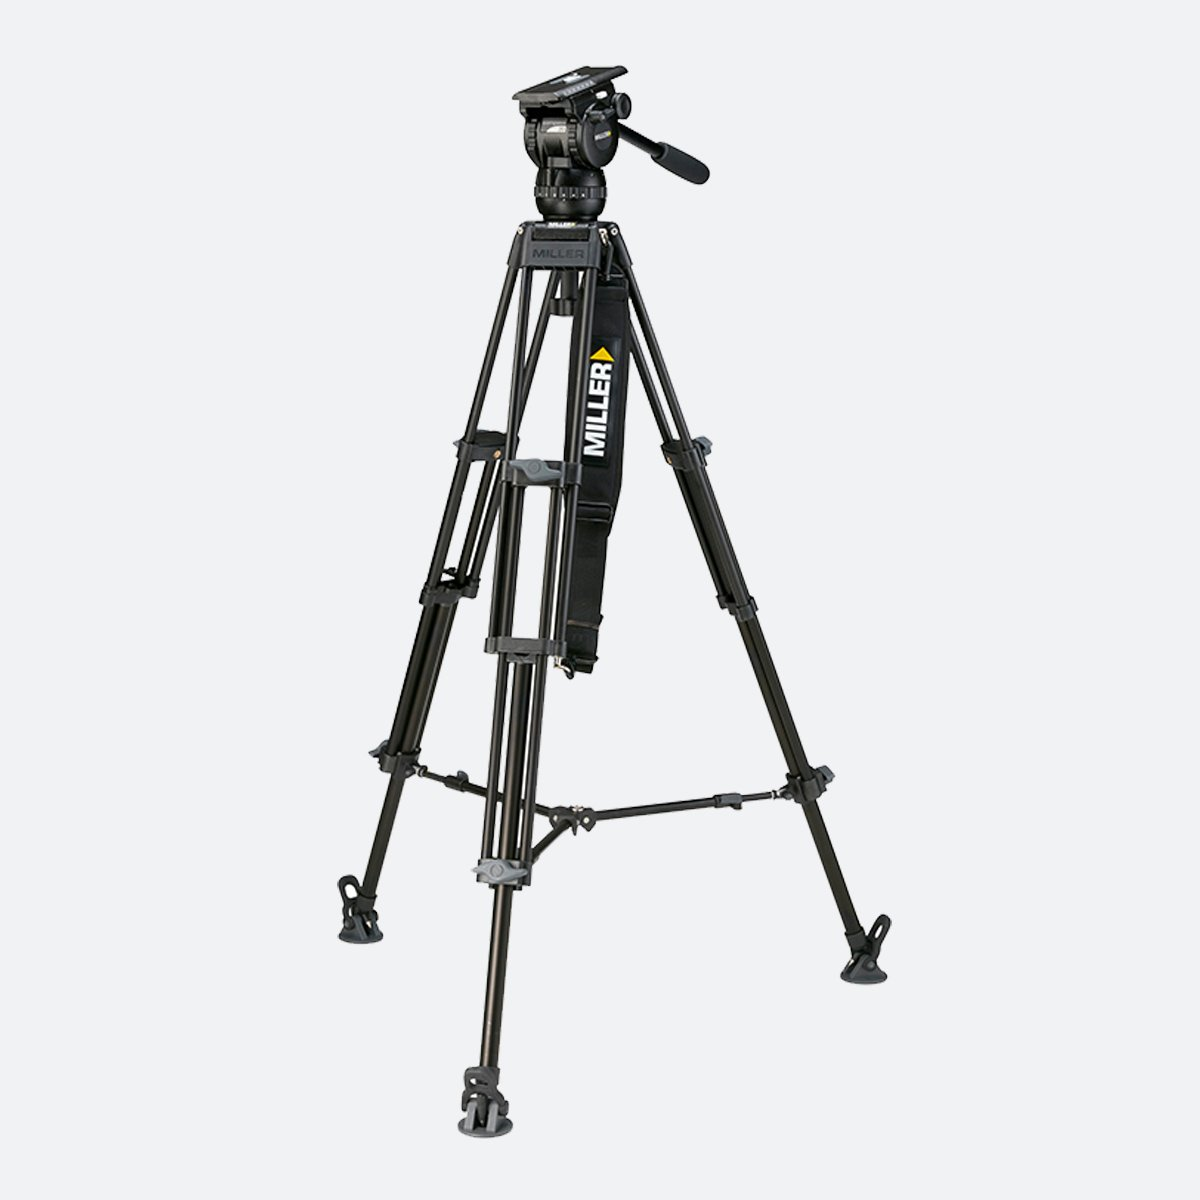 Miller 1841 Compass 20 Toggle 2-Stage Alloy Tripod System